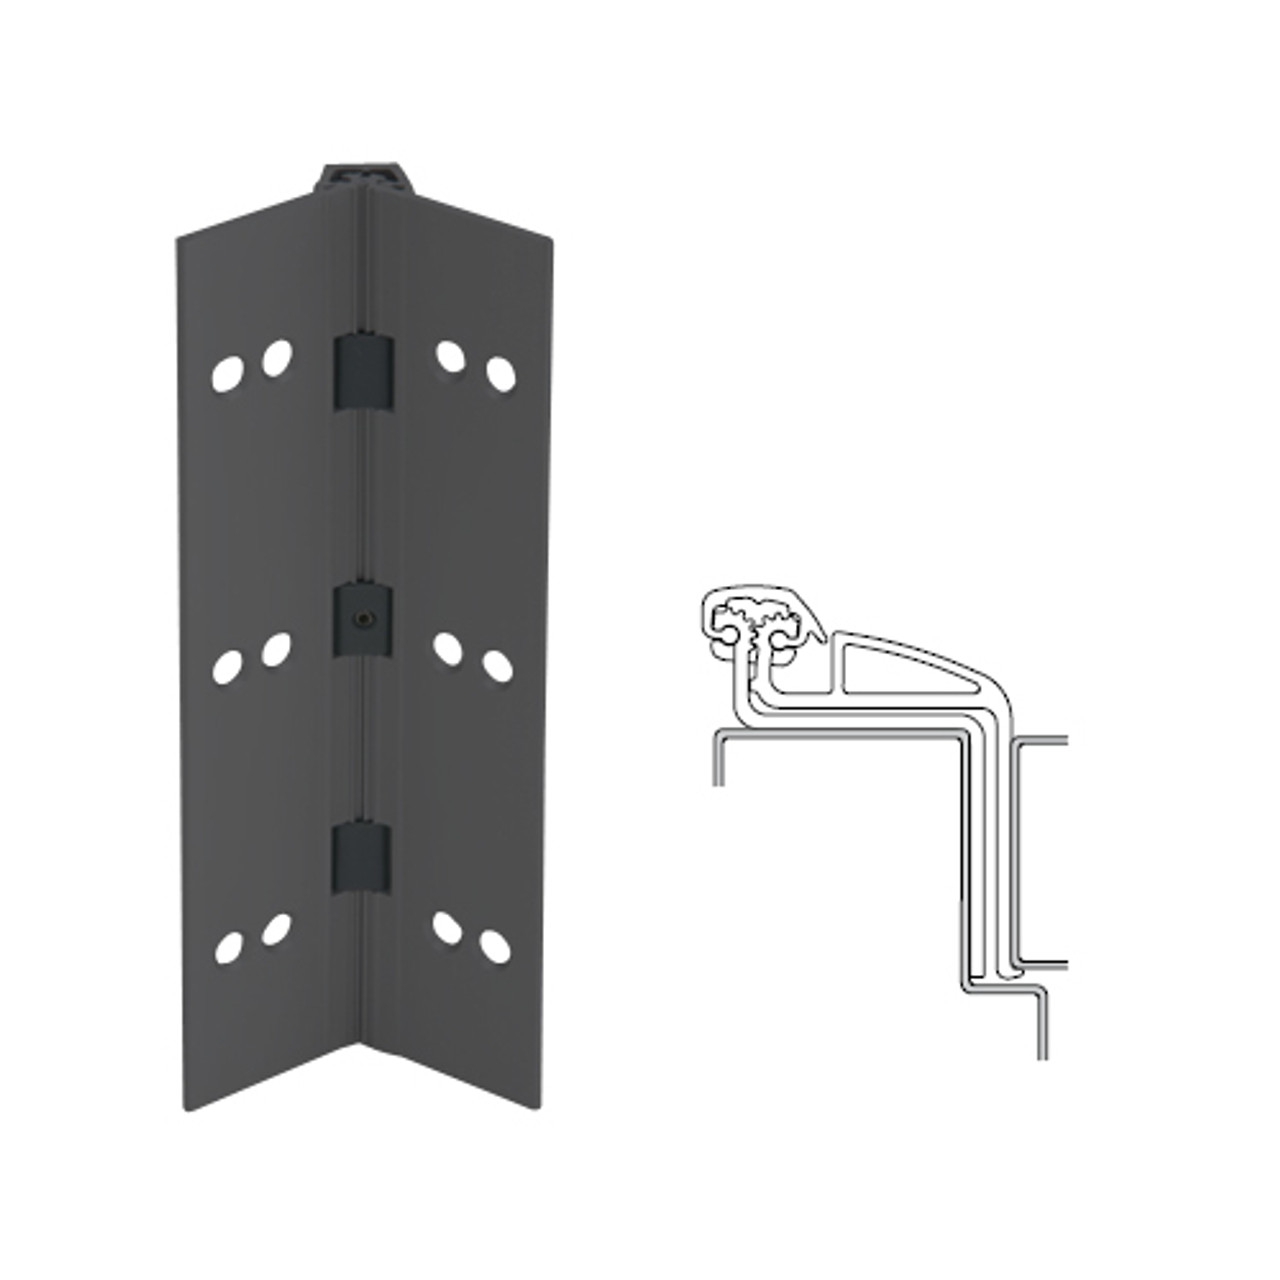 041XY-315AN-85-SECWDWD IVES Full Mortise Continuous Geared Hinges with Security Screws - Hex Pin Drive in Anodized Black